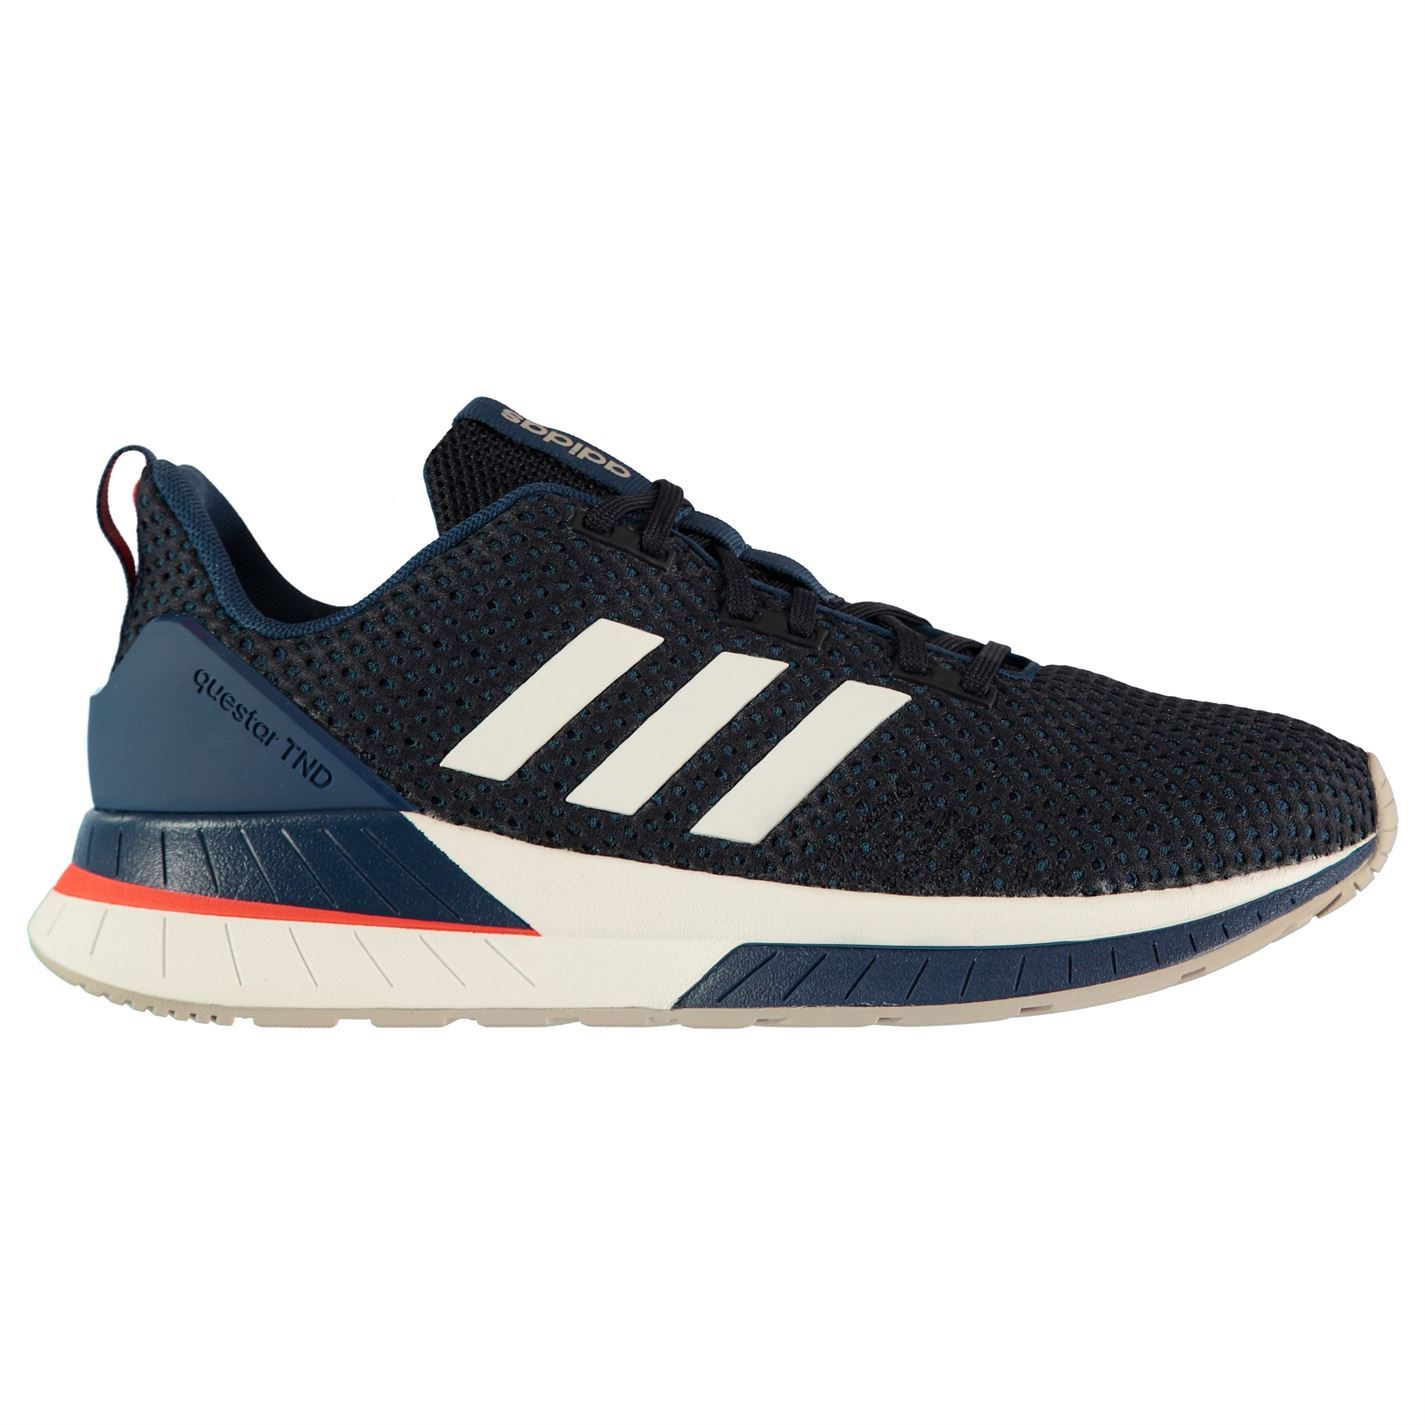 Details about adidas Questar TND Running Shoes Mens BlackRed Jogging Trainers Sneakers